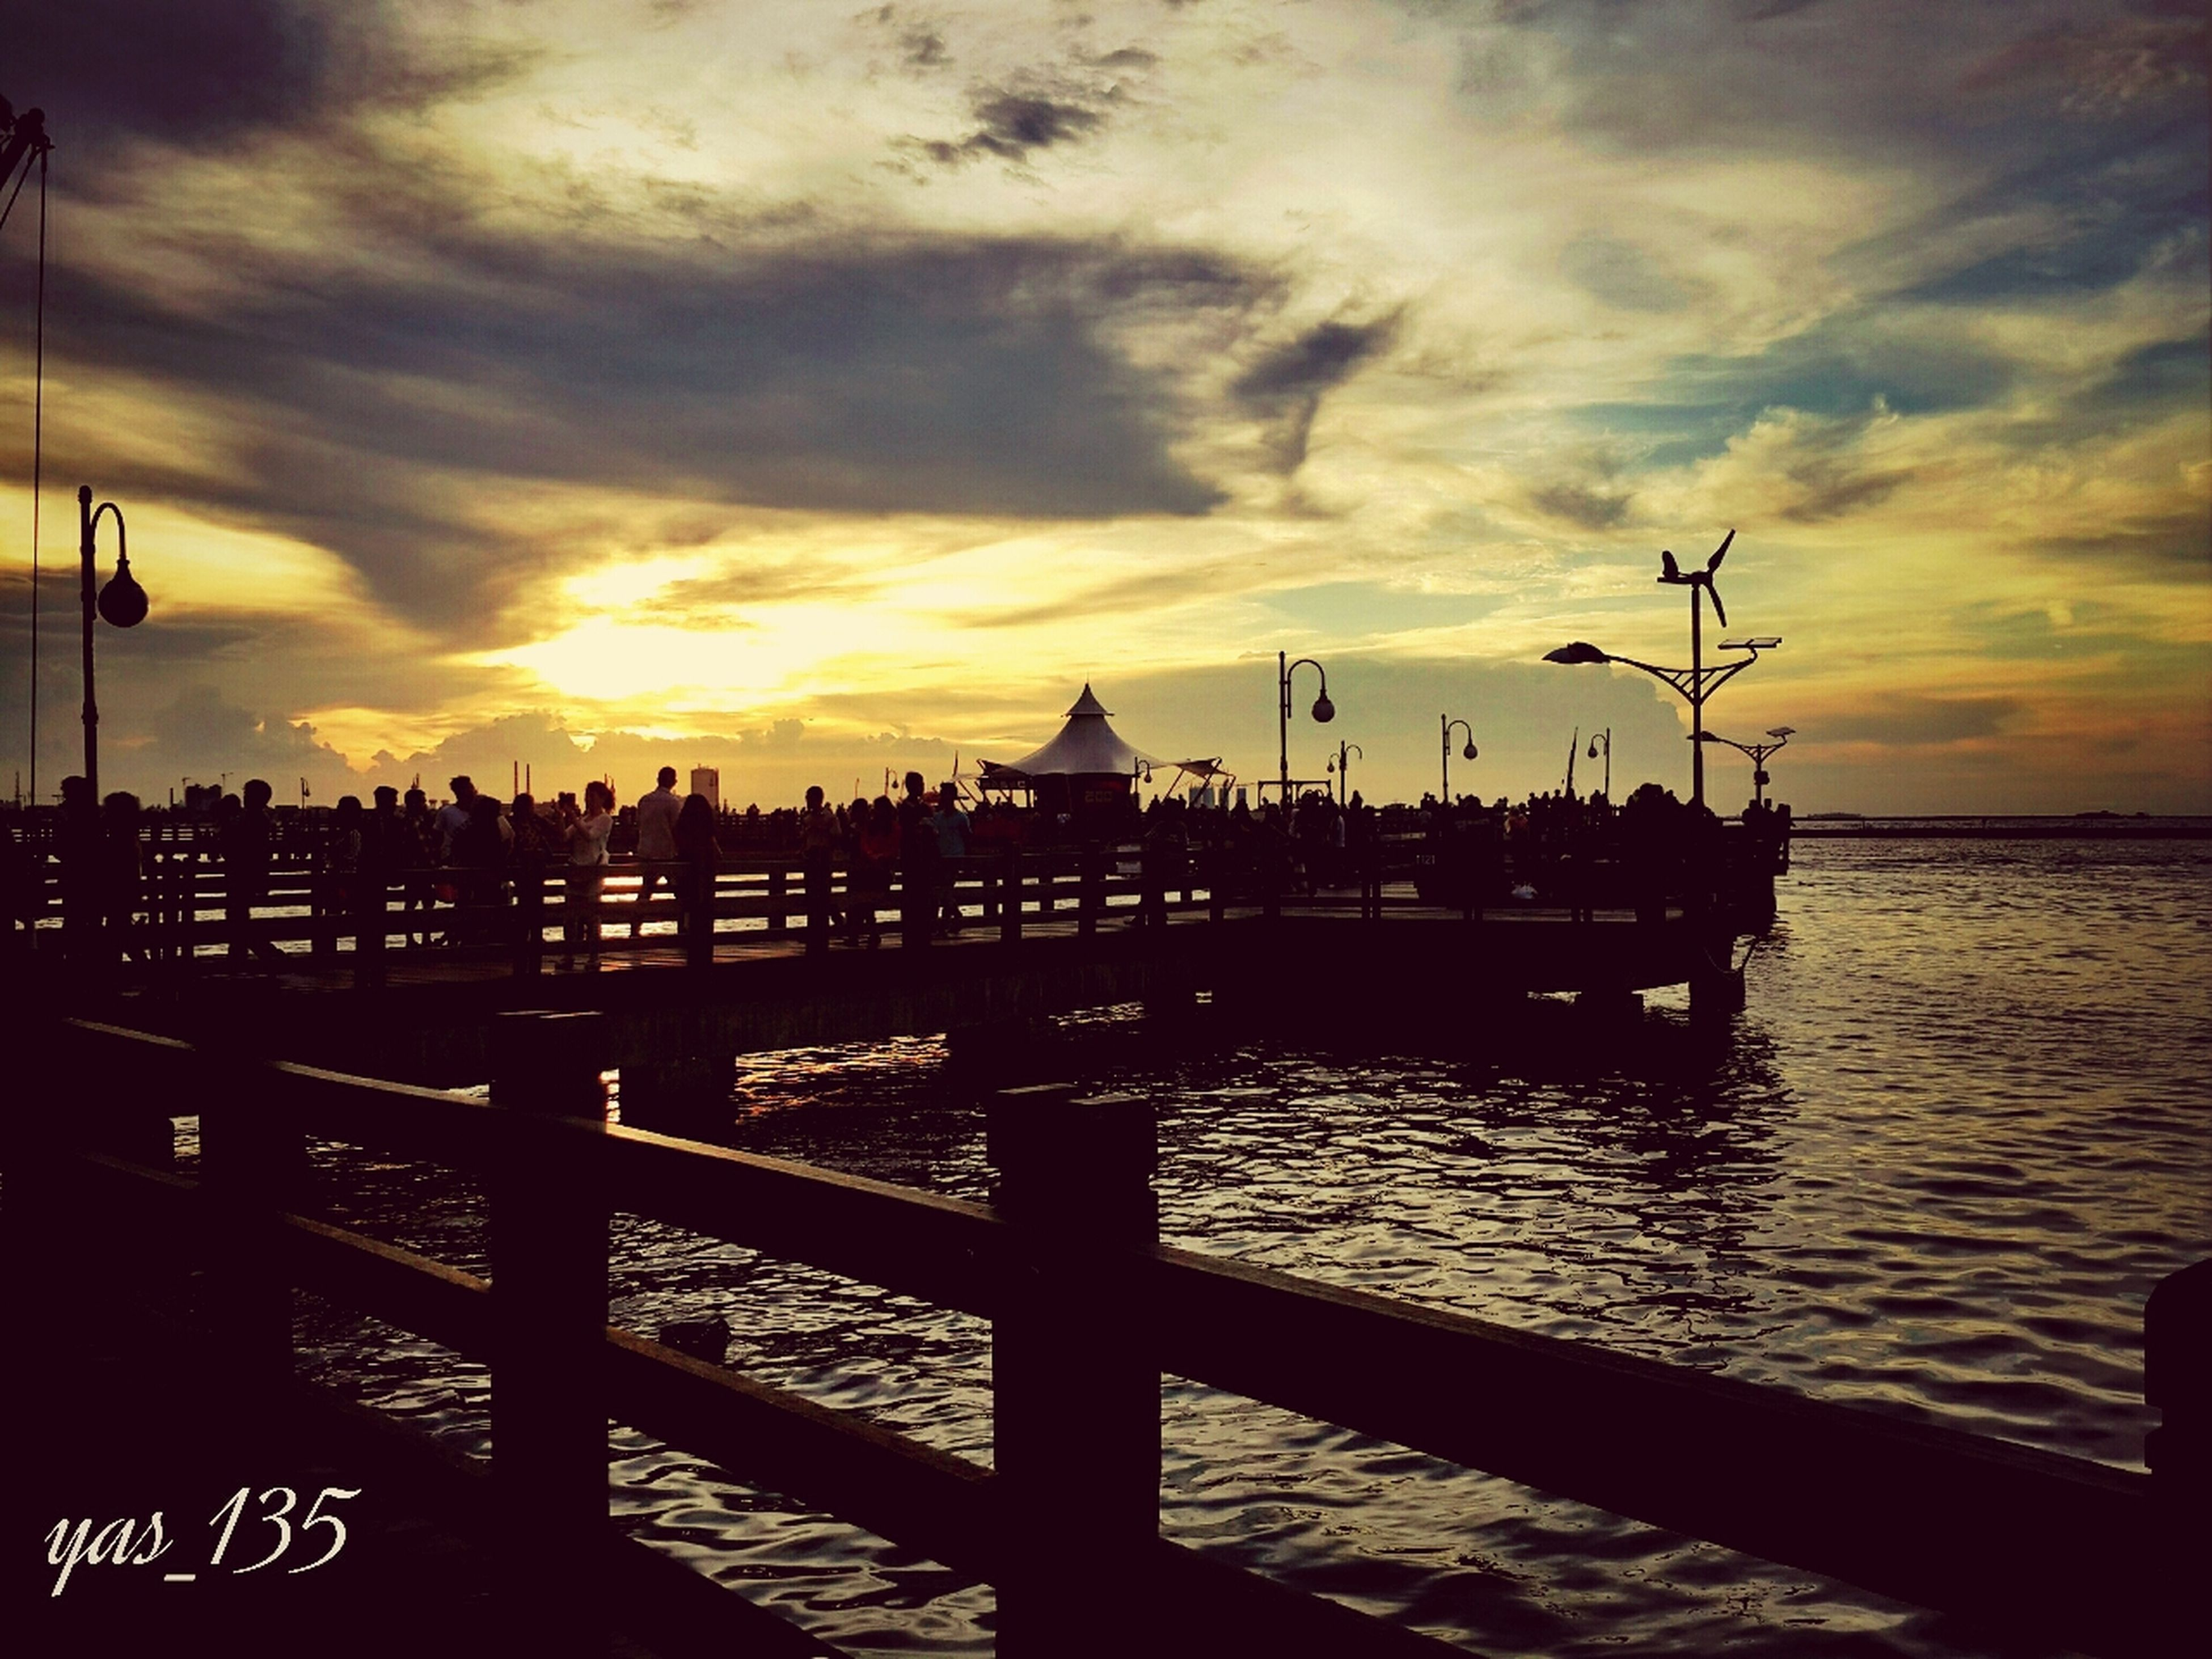 sunset, water, sky, sea, cloud - sky, transportation, nautical vessel, mode of transport, silhouette, cloudy, nature, scenics, beauty in nature, orange color, boat, cloud, pier, tranquility, harbor, tranquil scene